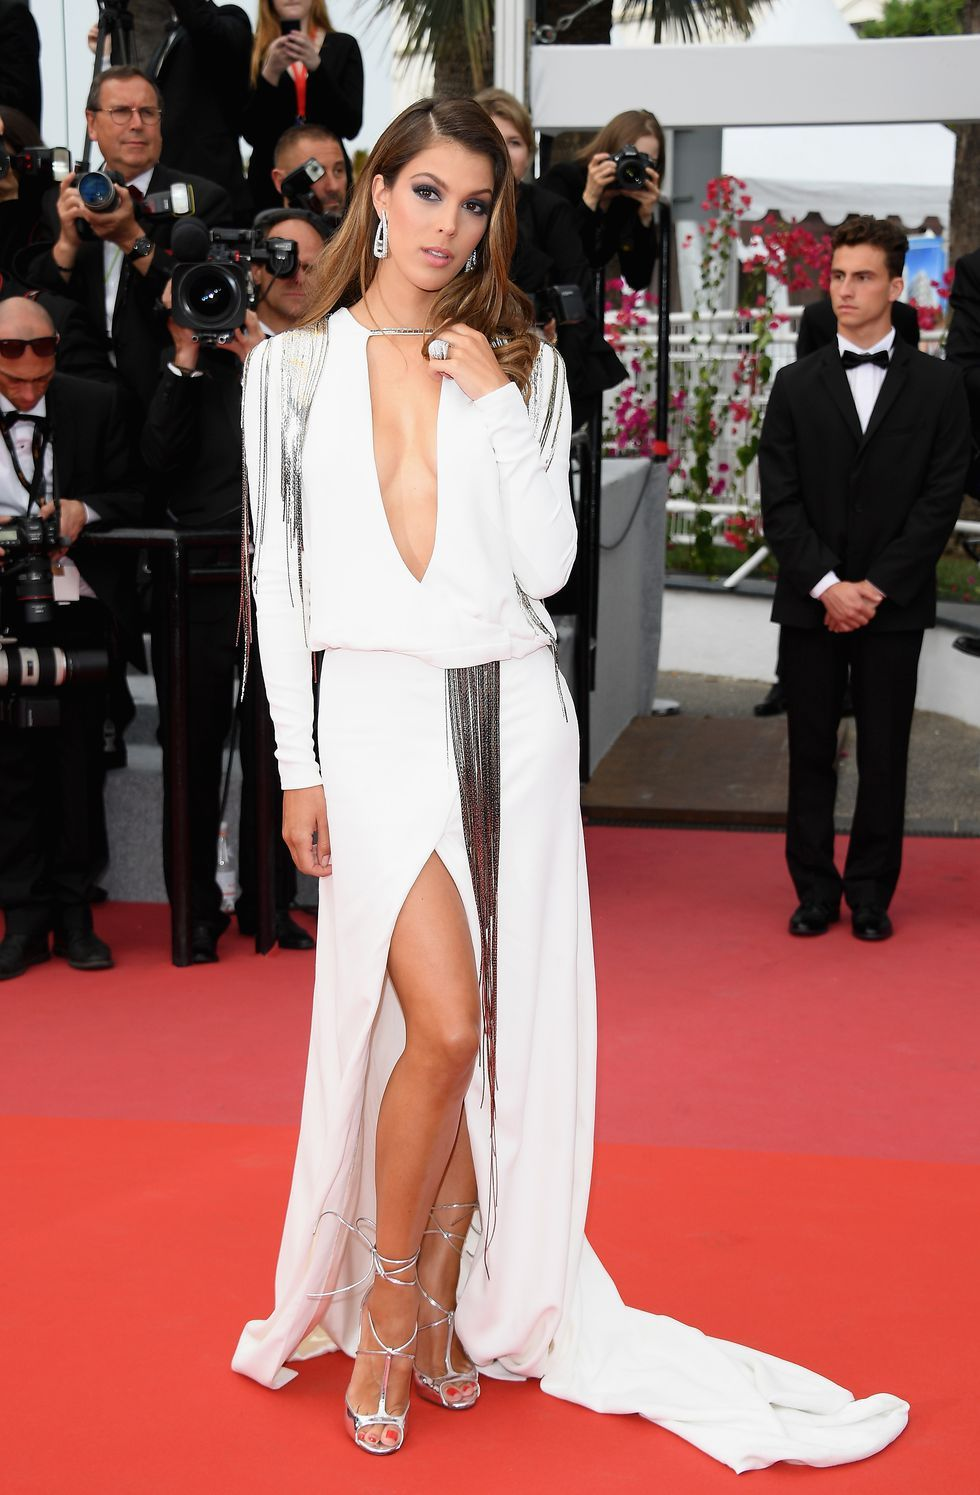 the best red carpet looks from the 2018 cannes film festival | 71º